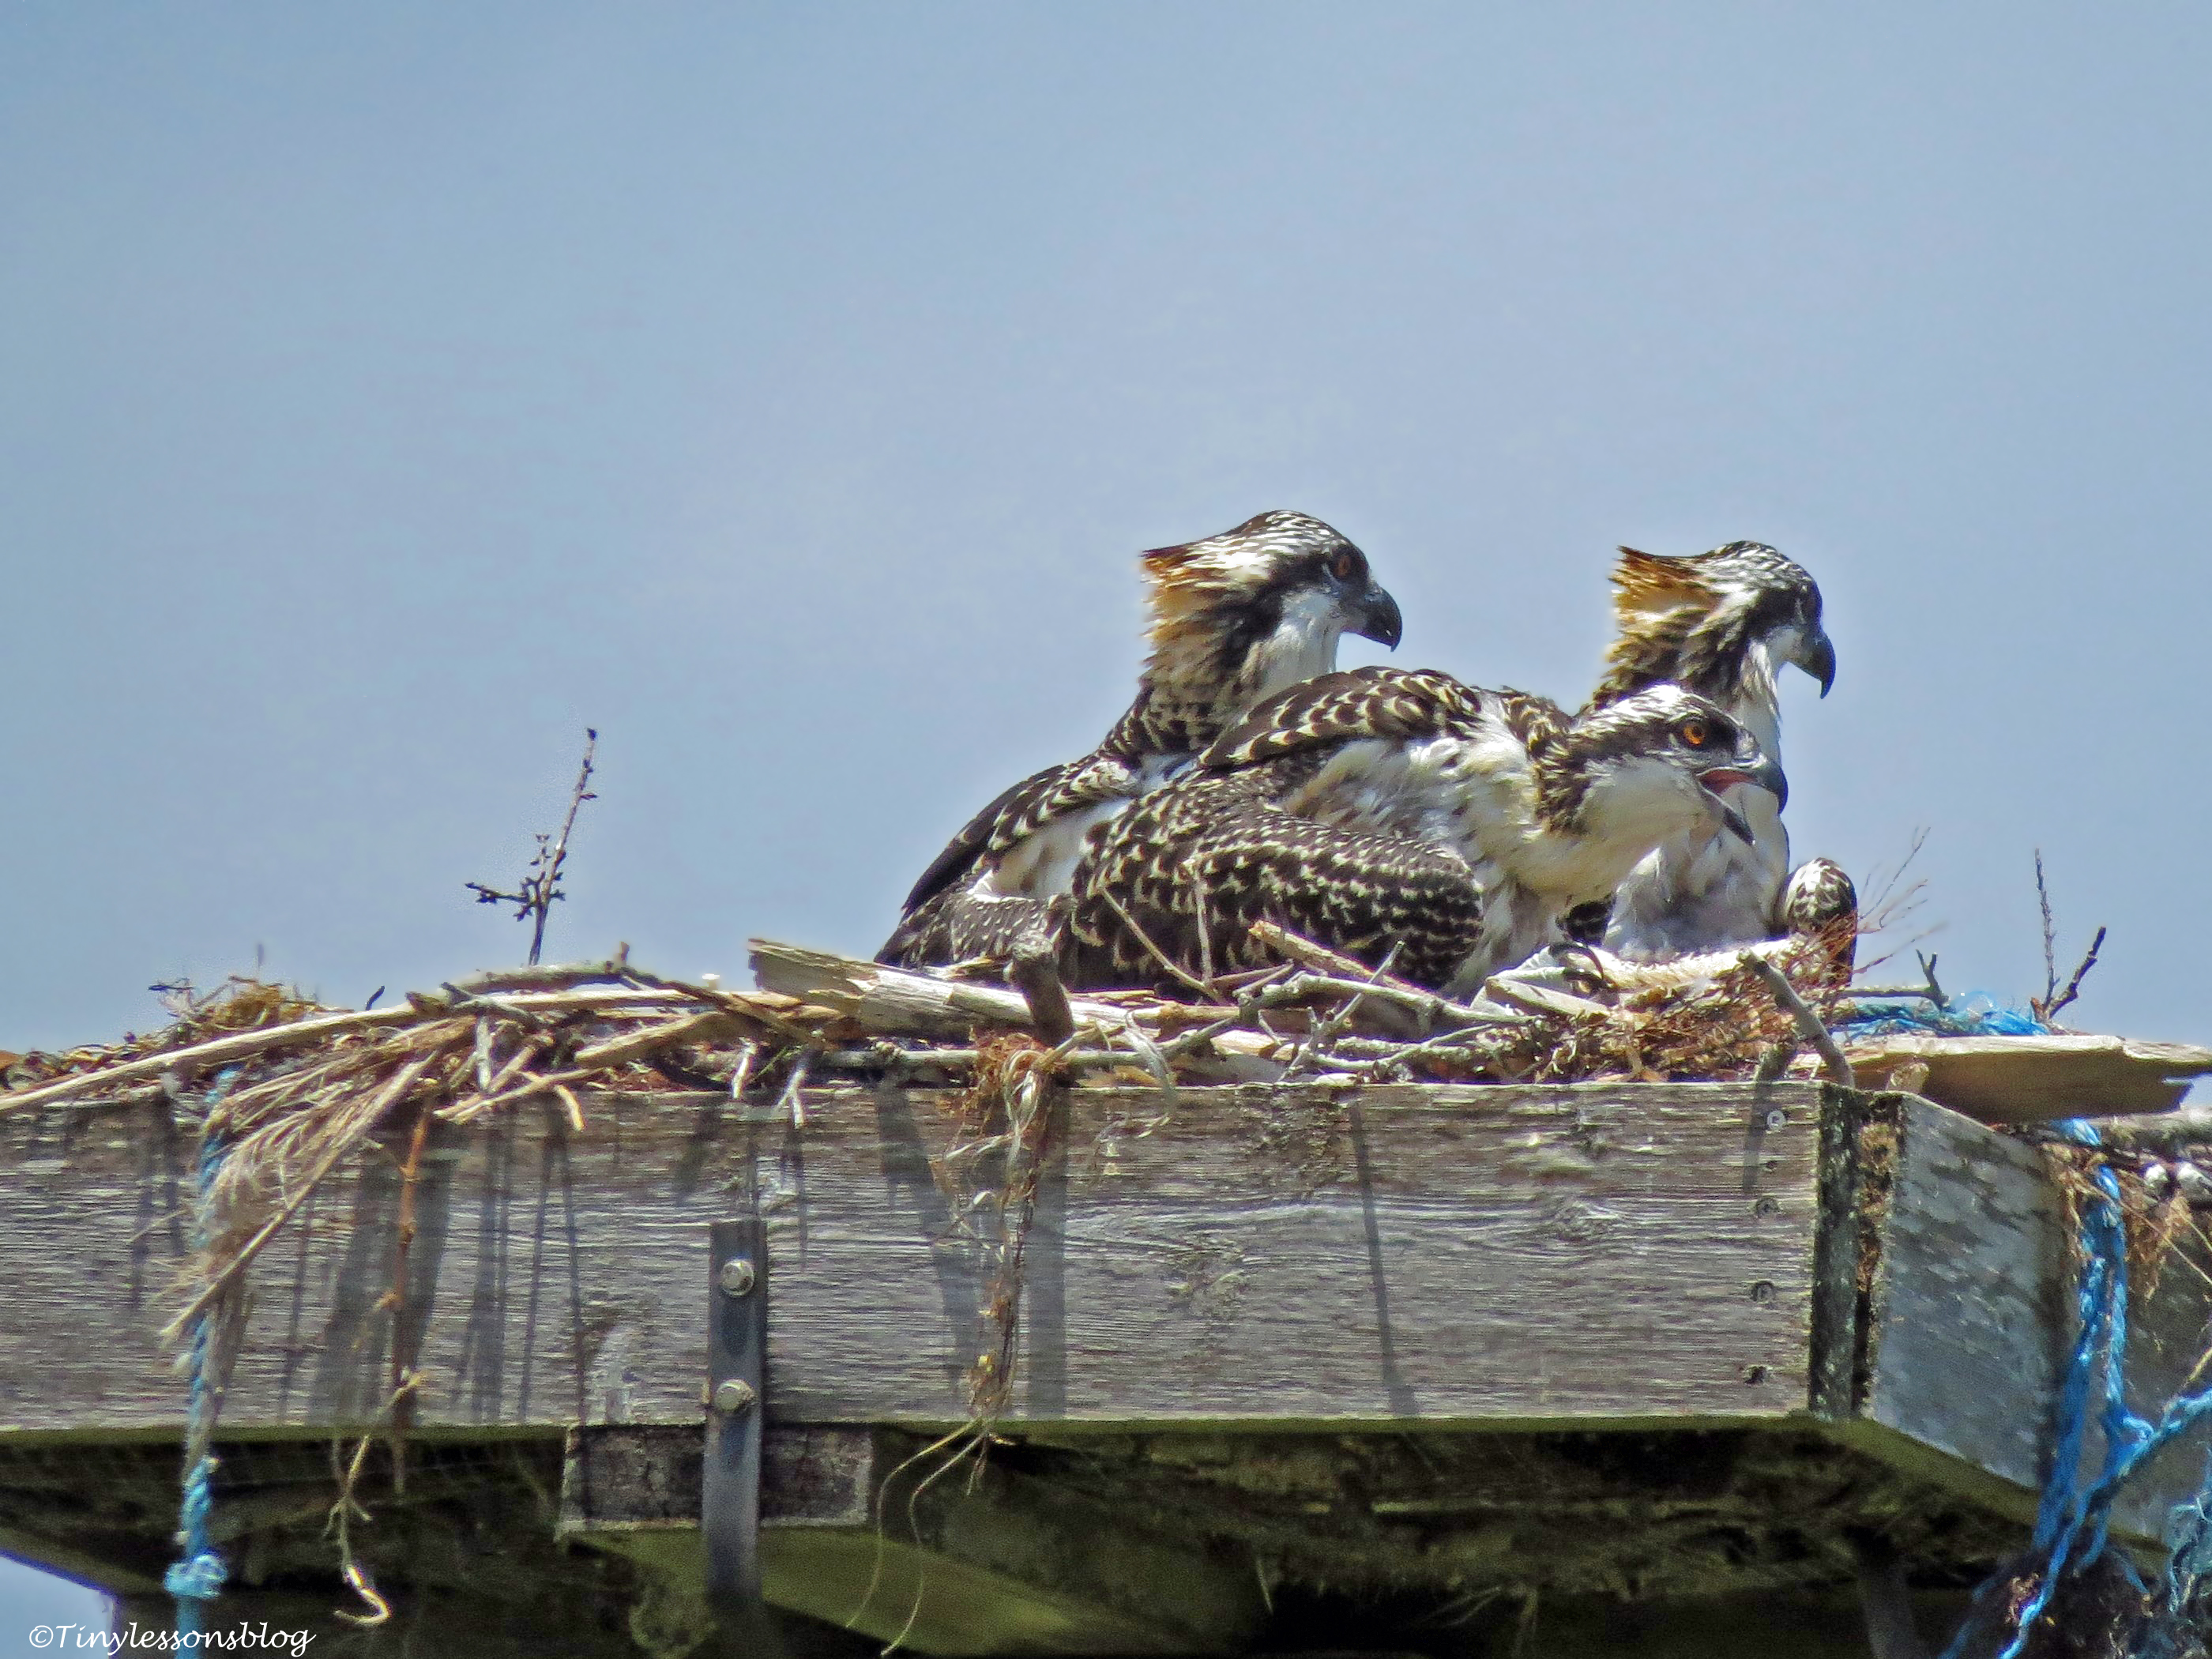 osprey chicks waiting for female osprey to return Sand Key park Clearwater Florida